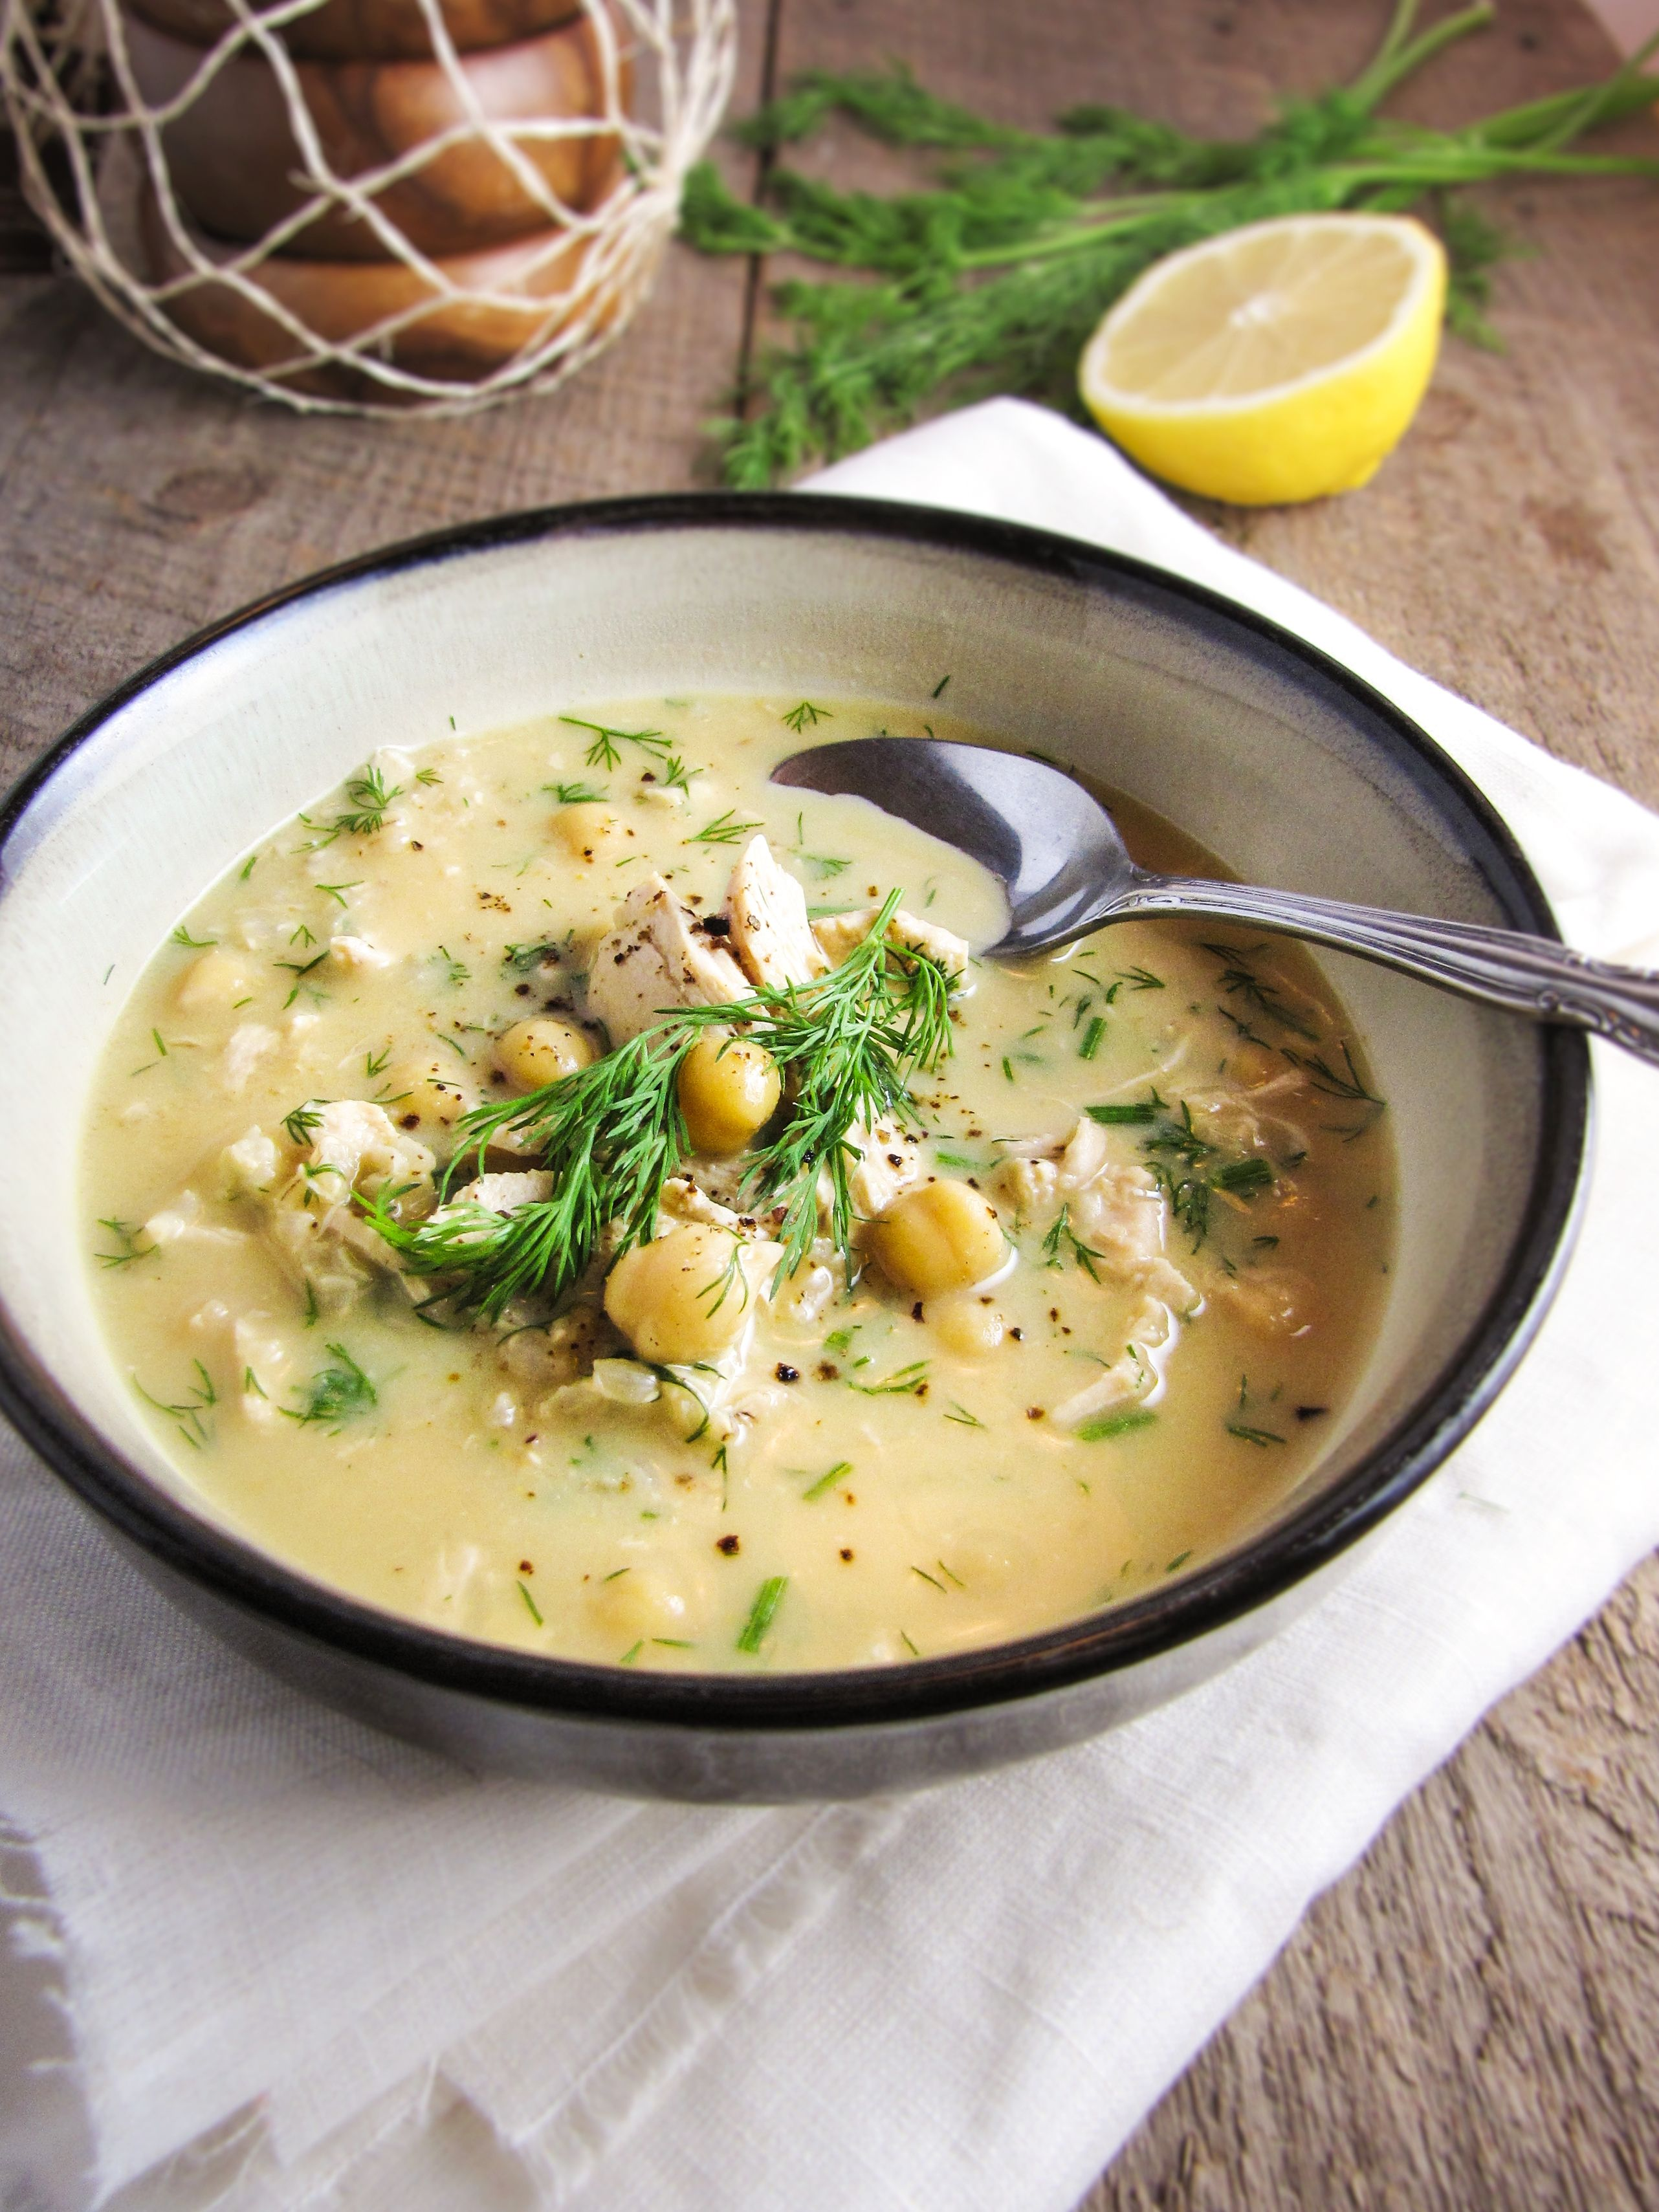 Greek Egg and Lemon Soup with Chicken, Brown Rice, and Chickpeas